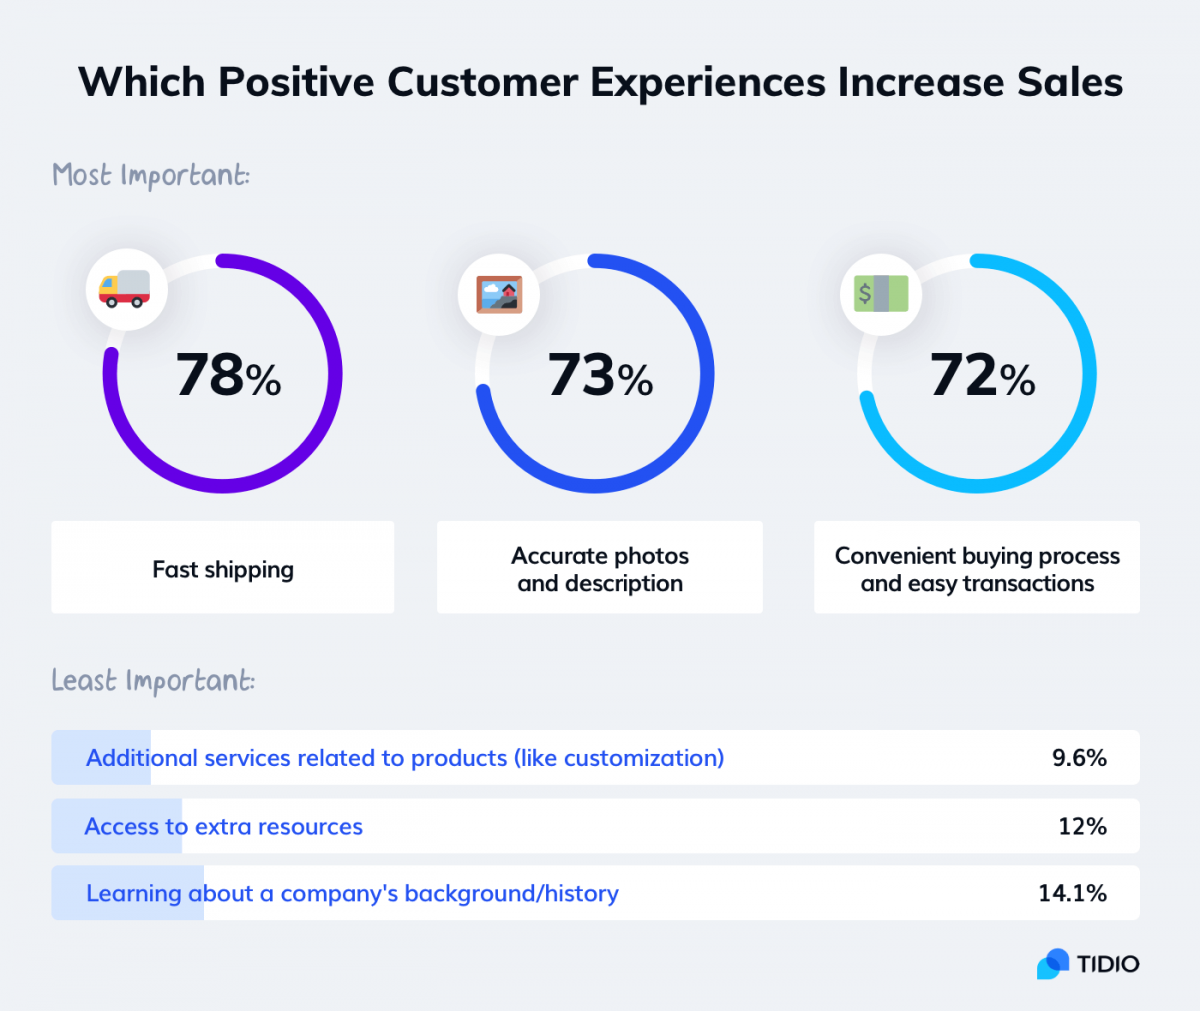 Factors that contribute to building a positive customer experience